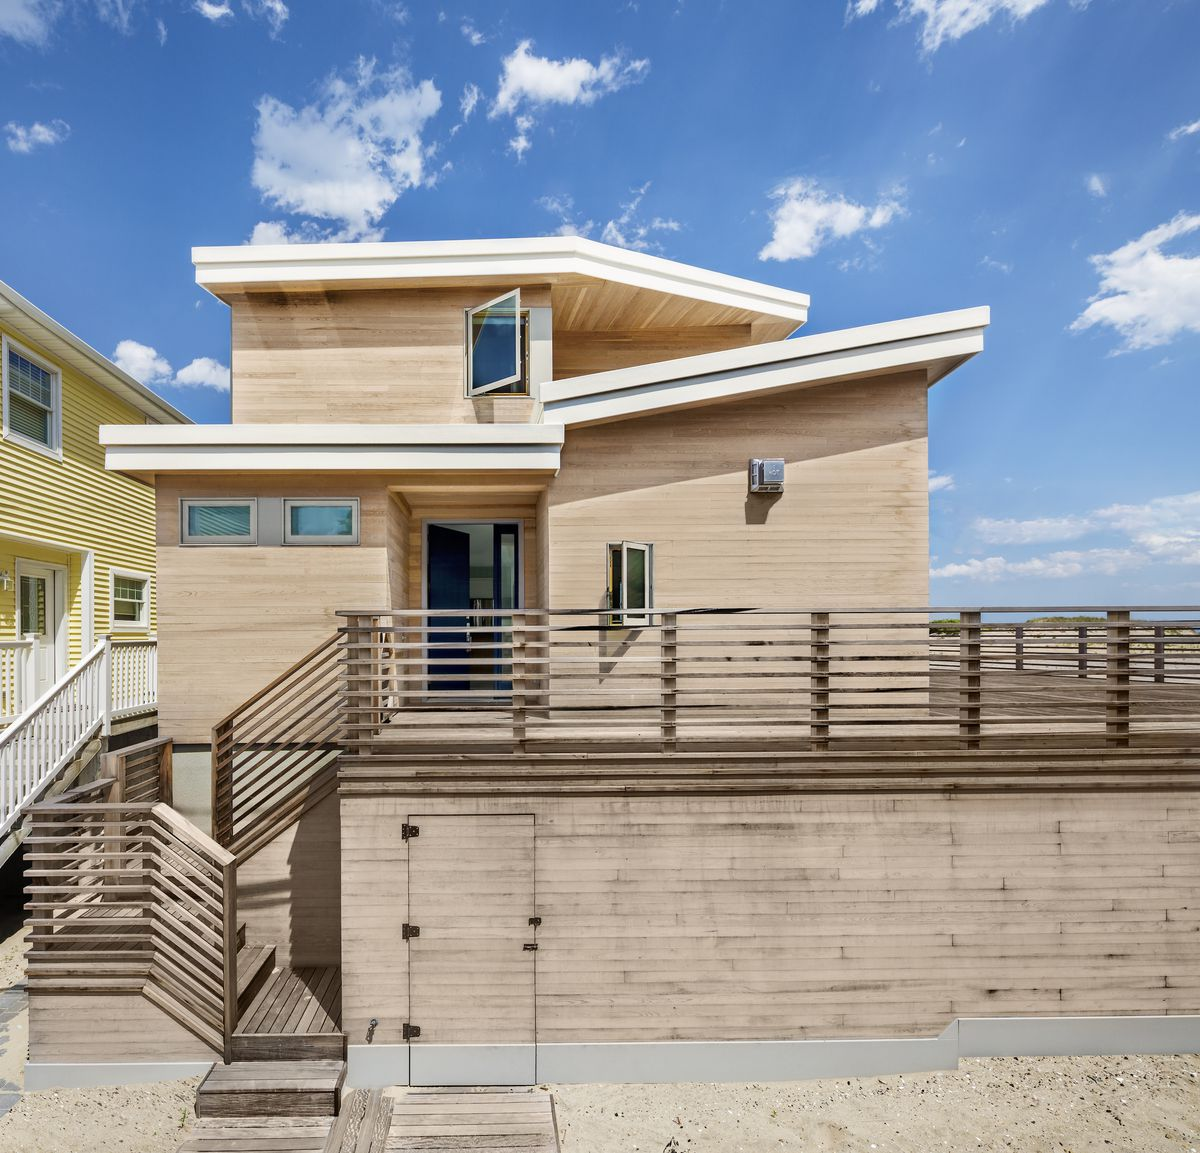 Beach House Decks: In Breezy Point, A Dreamy, Modern Beach House Transforms A